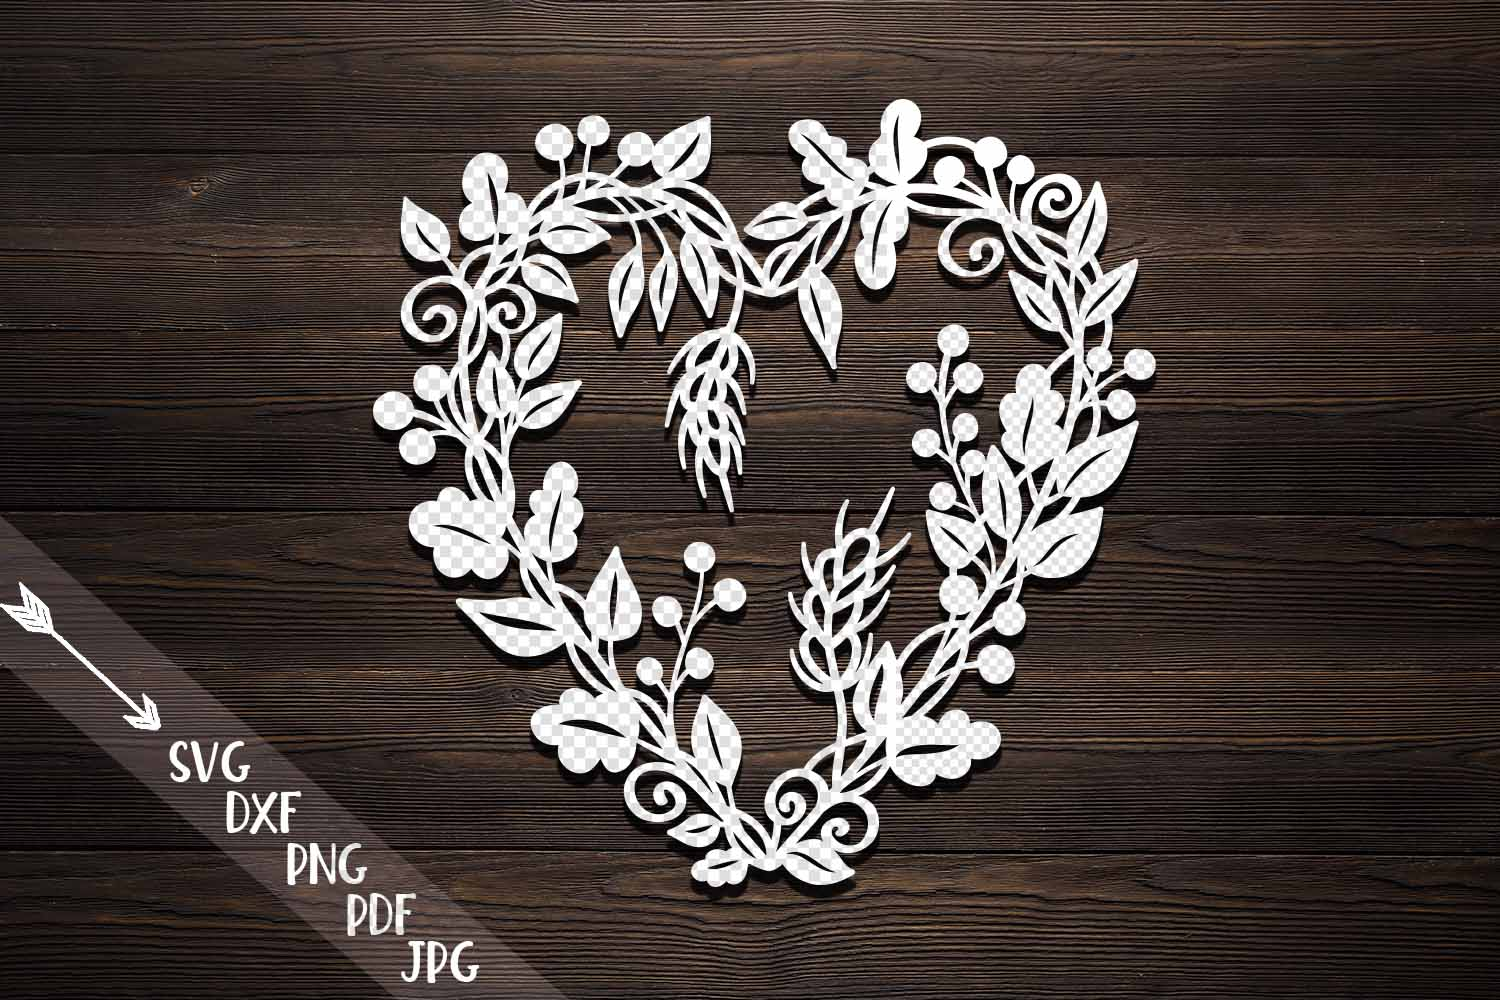 Download Free Heart Wreath Graphic By Cornelia Creative Fabrica for Cricut Explore, Silhouette and other cutting machines.